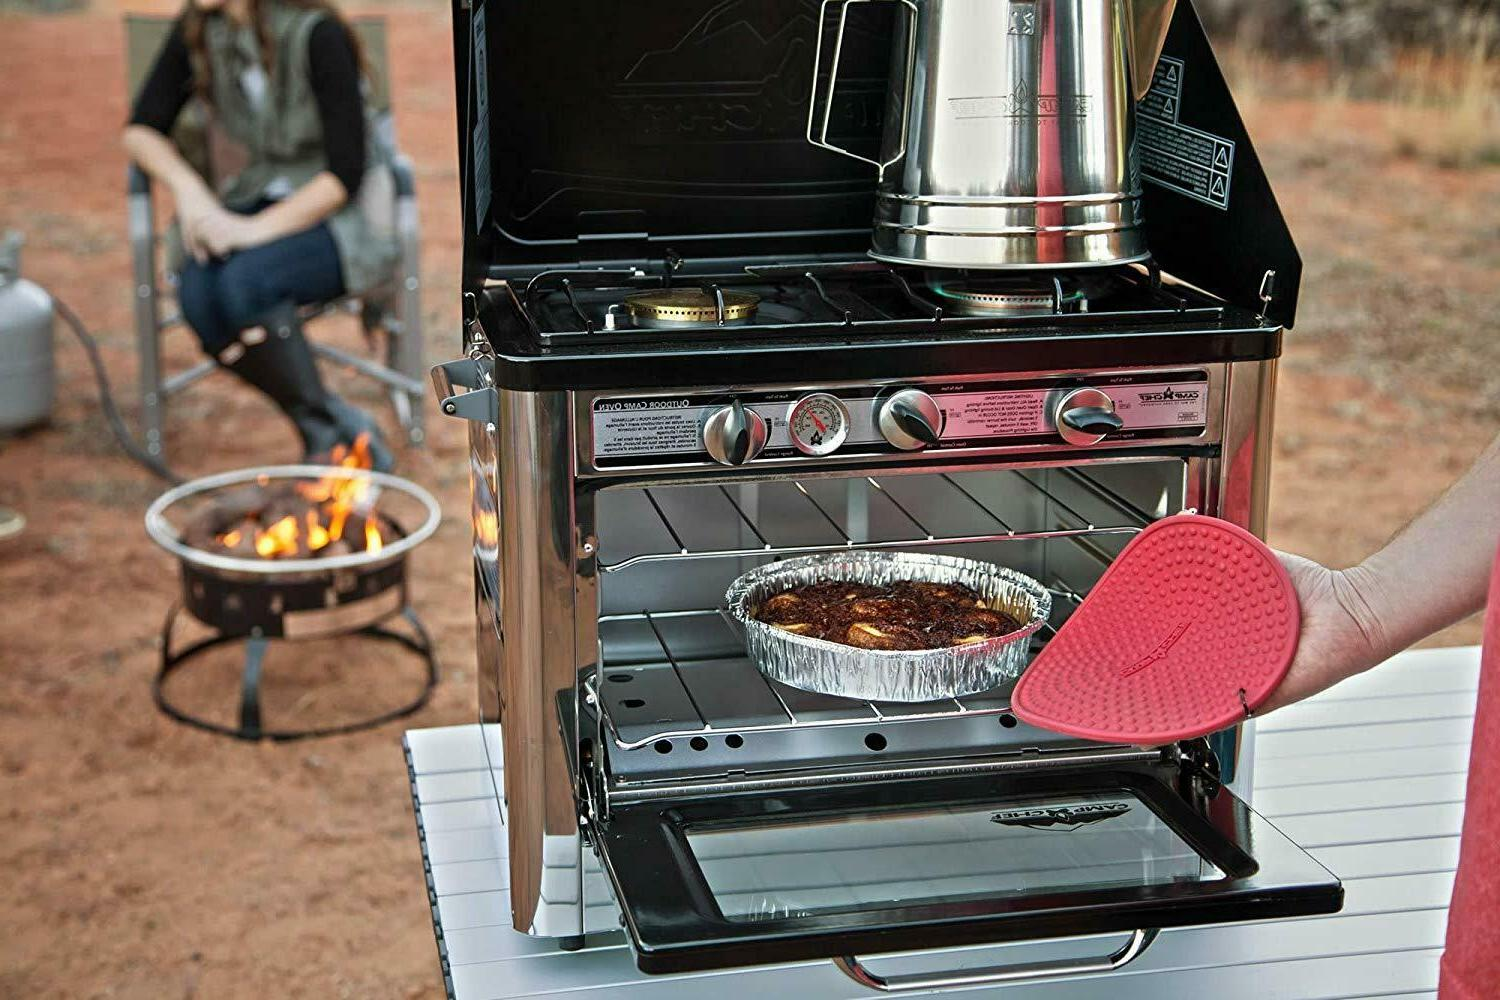 Camp Oven Propane Table Stoves Pizza Camping Portable Range